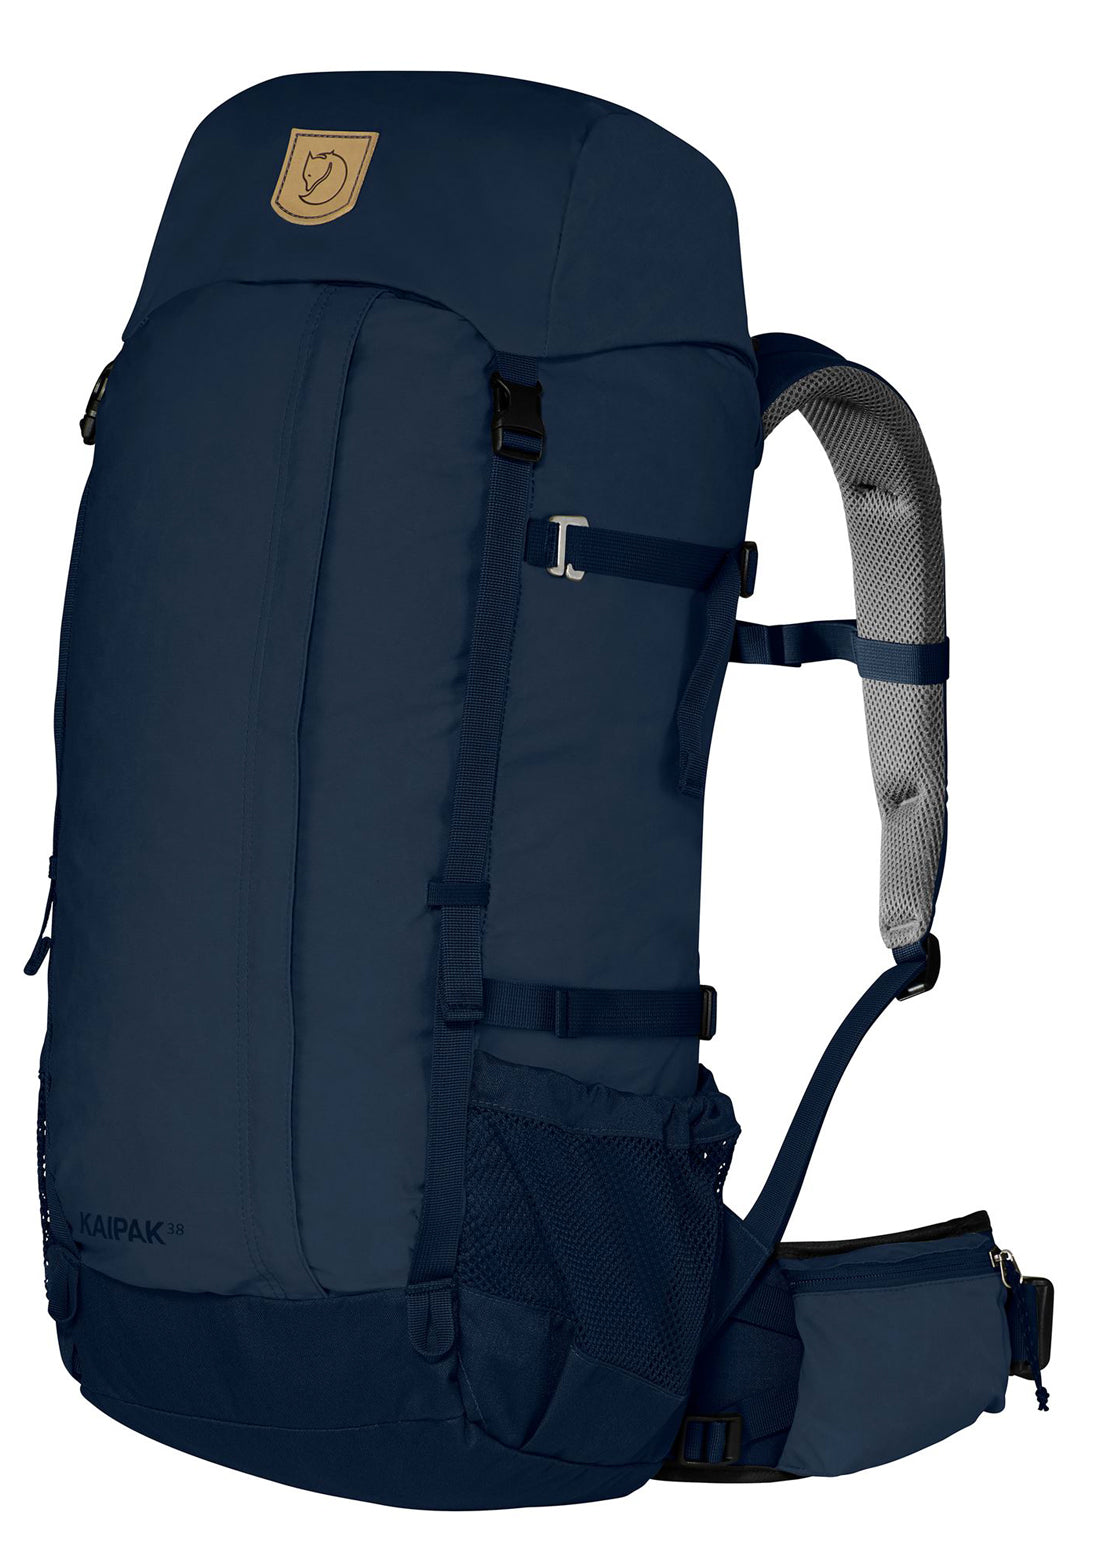 Fjallraven Kaipak 38 Hiking Bag Navy